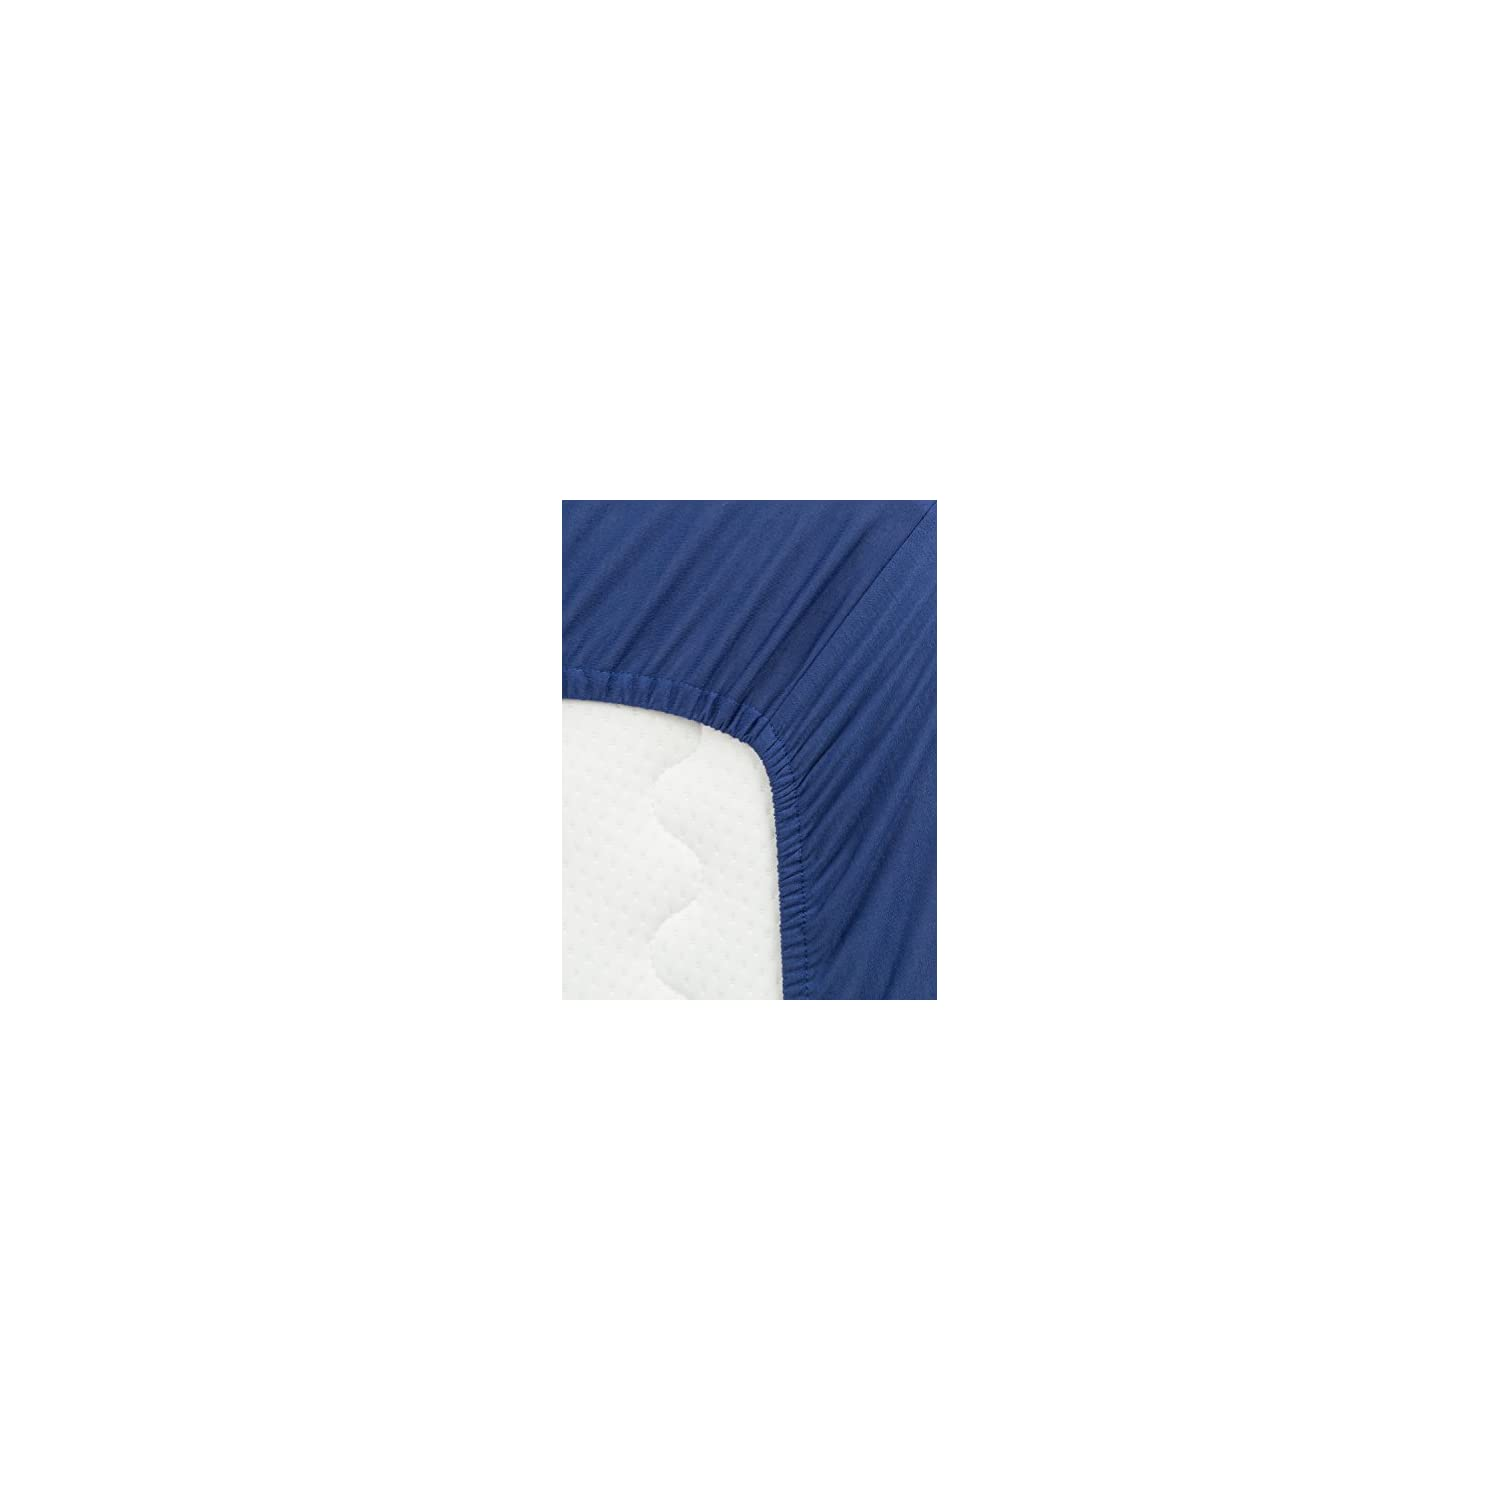 TILLYOU Jersey Knit Soft Crib Sheet Fitted, Hypoallergenic Breathable Cozy Toddler Sheets for Baby Boys, 28'' x 52'' Fits Standard Crib and Toddler Bed Mattress, Navy Blue/Royal Blue